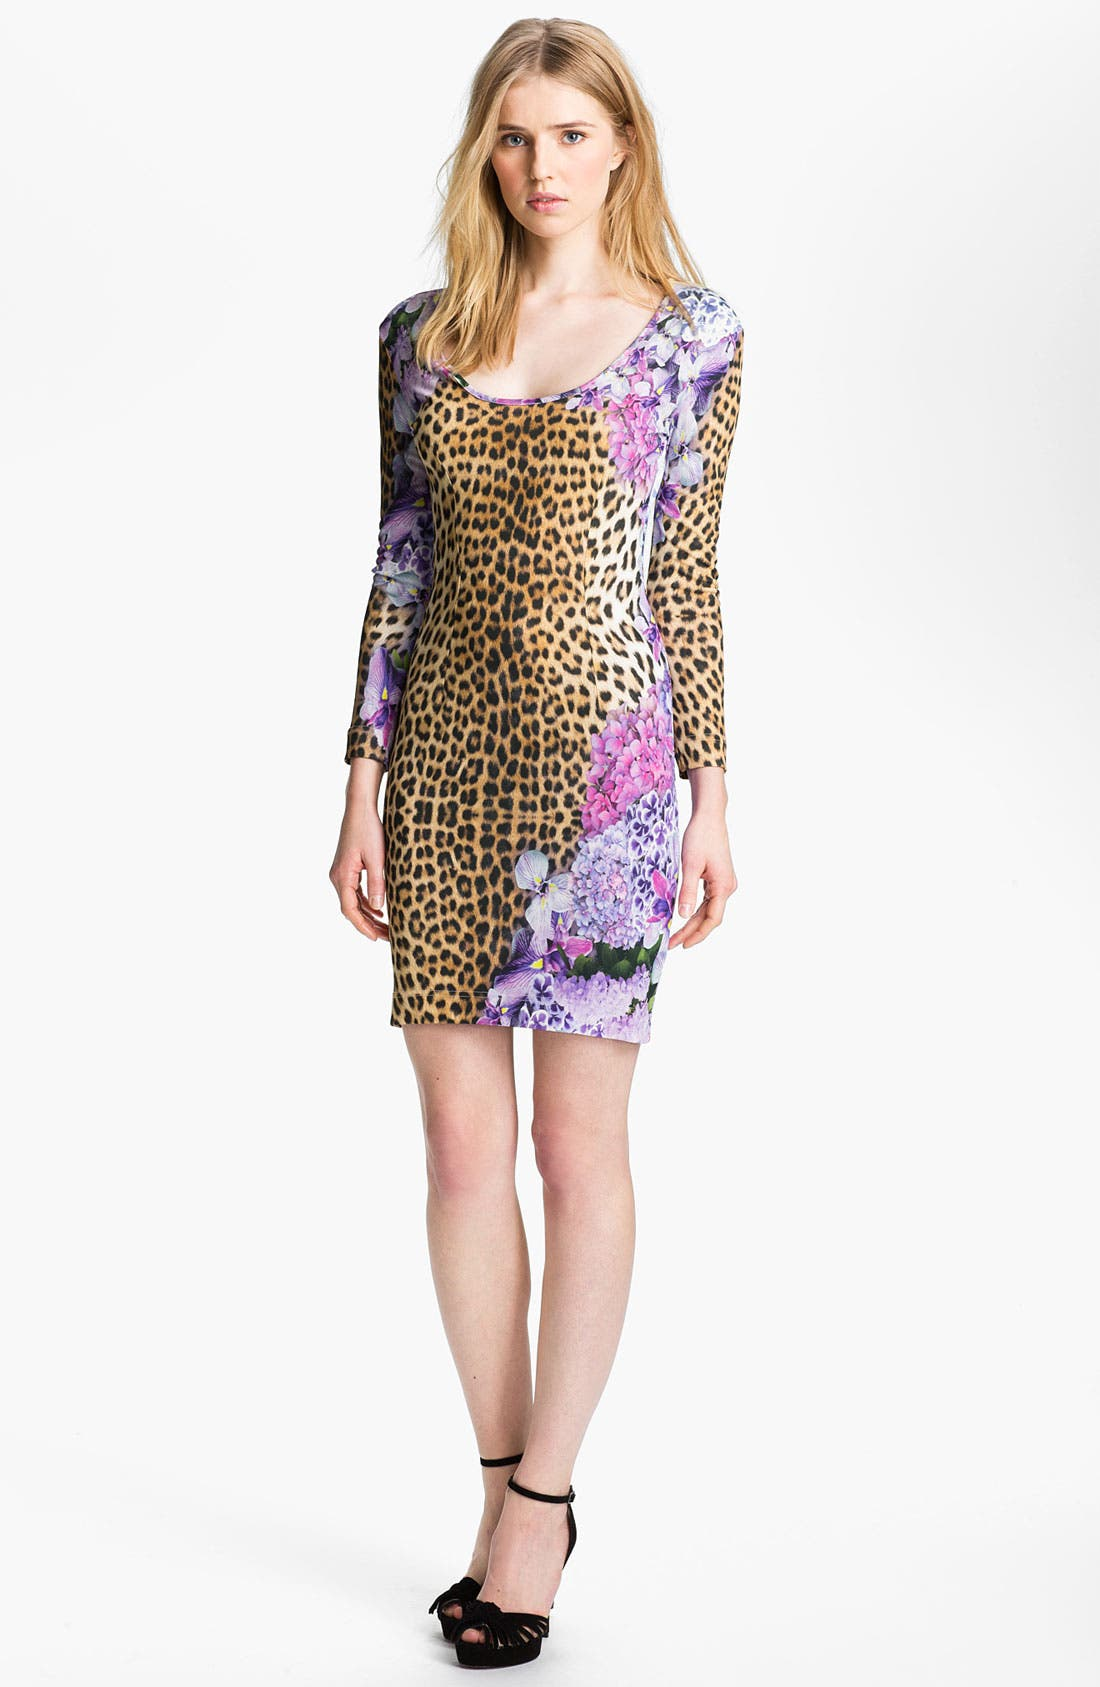 Main Image - Just Cavalli Leopard & Floral Print Jersey Dress